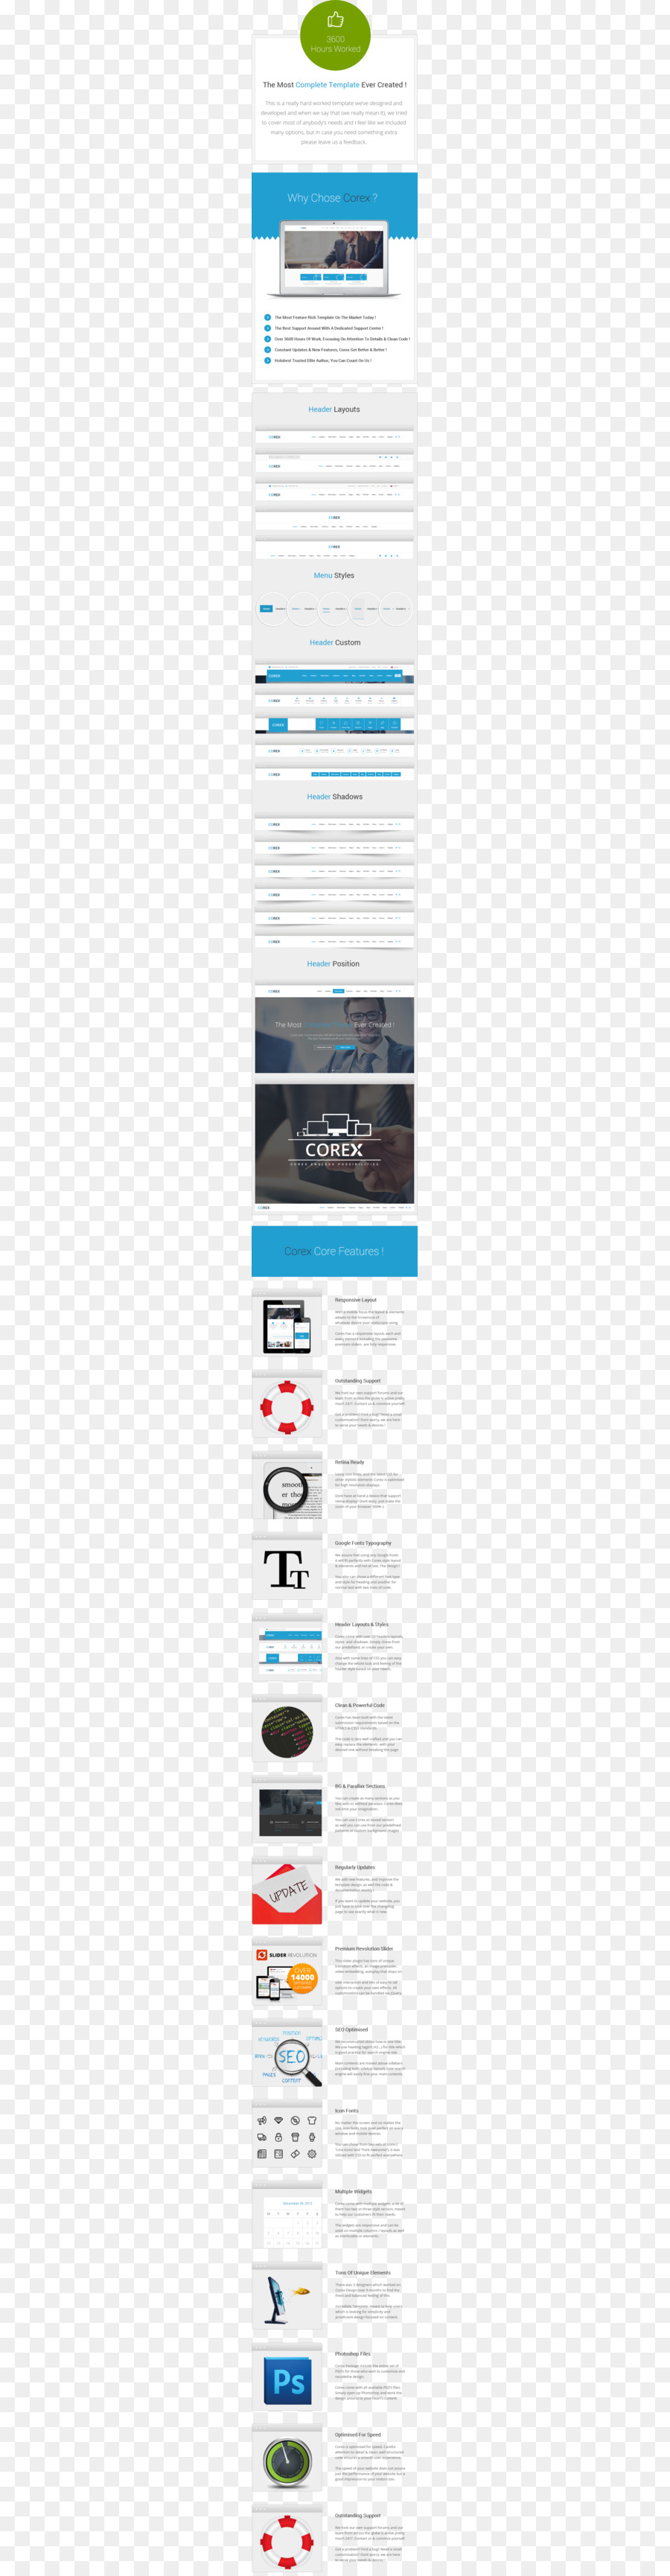 Html Document Imprint Template Download Png Download 6169543